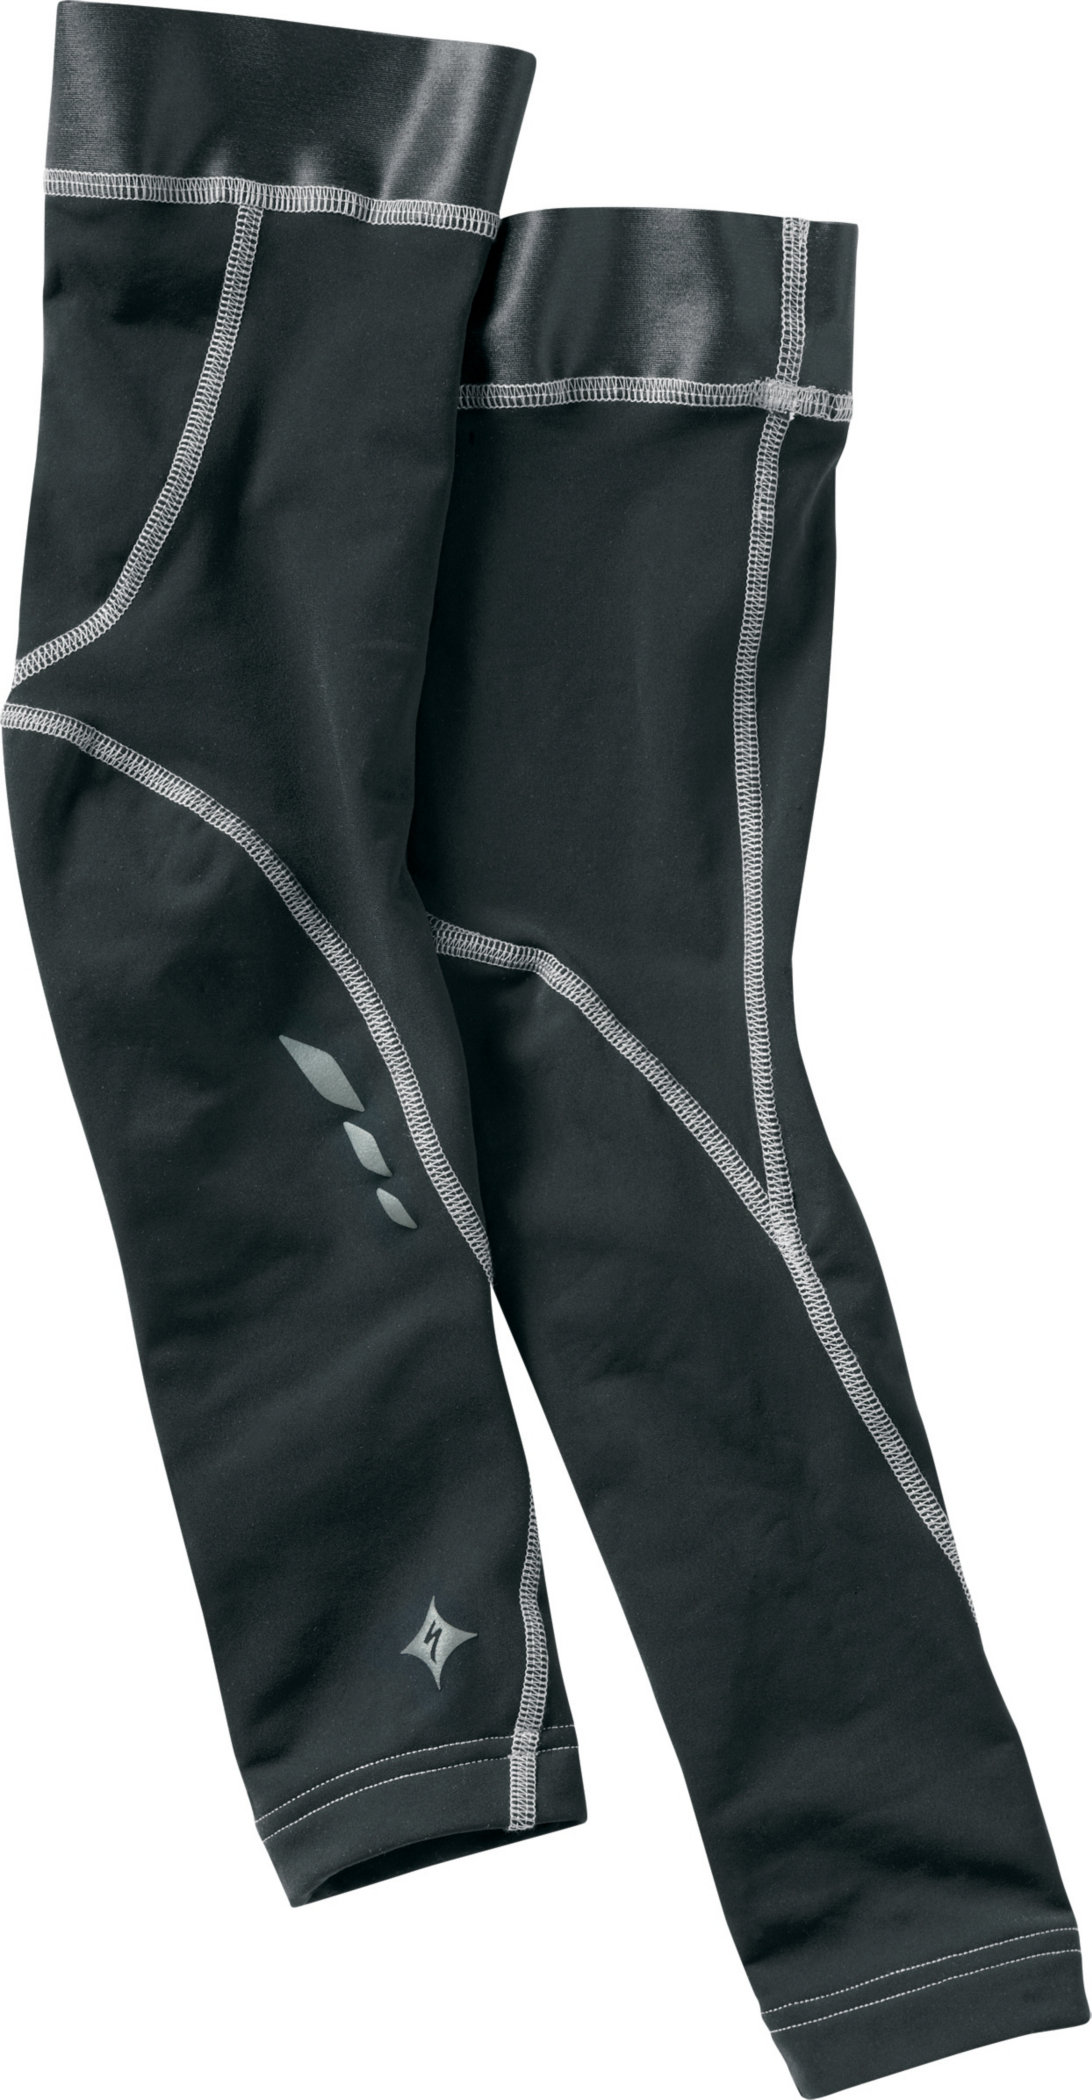 SPECIALIZED THERMINAL 2.0 ARM WARMER WMN BLK L - Alpha Bikes